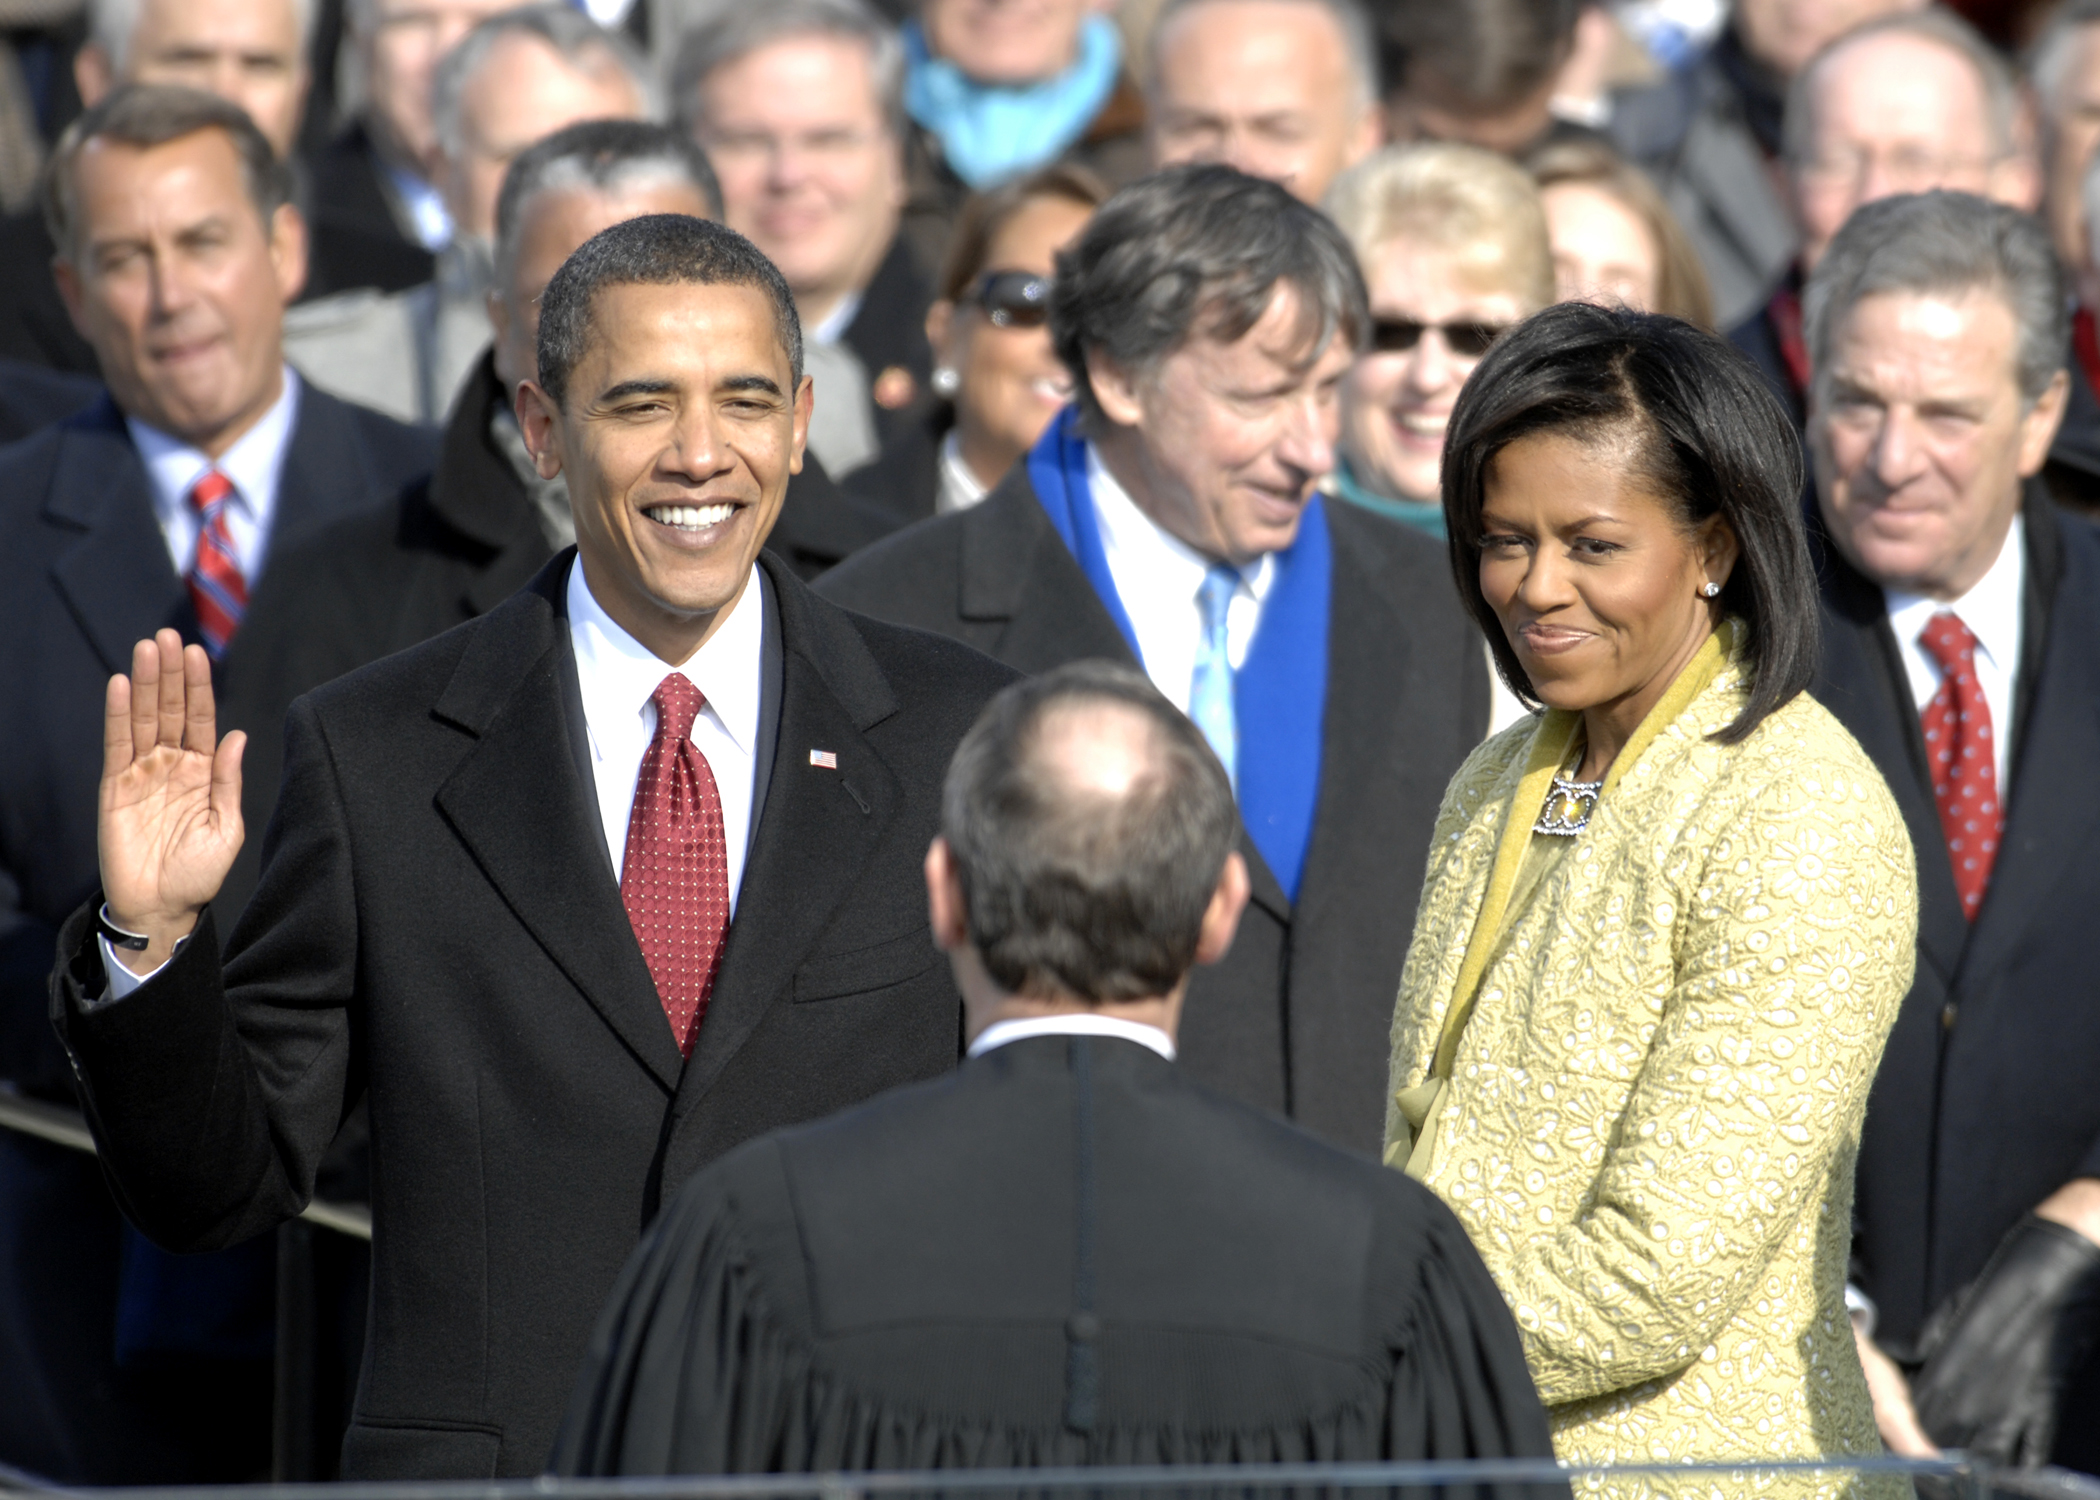 List Of Unofficial Events For The Inauguration Of Barack Obama